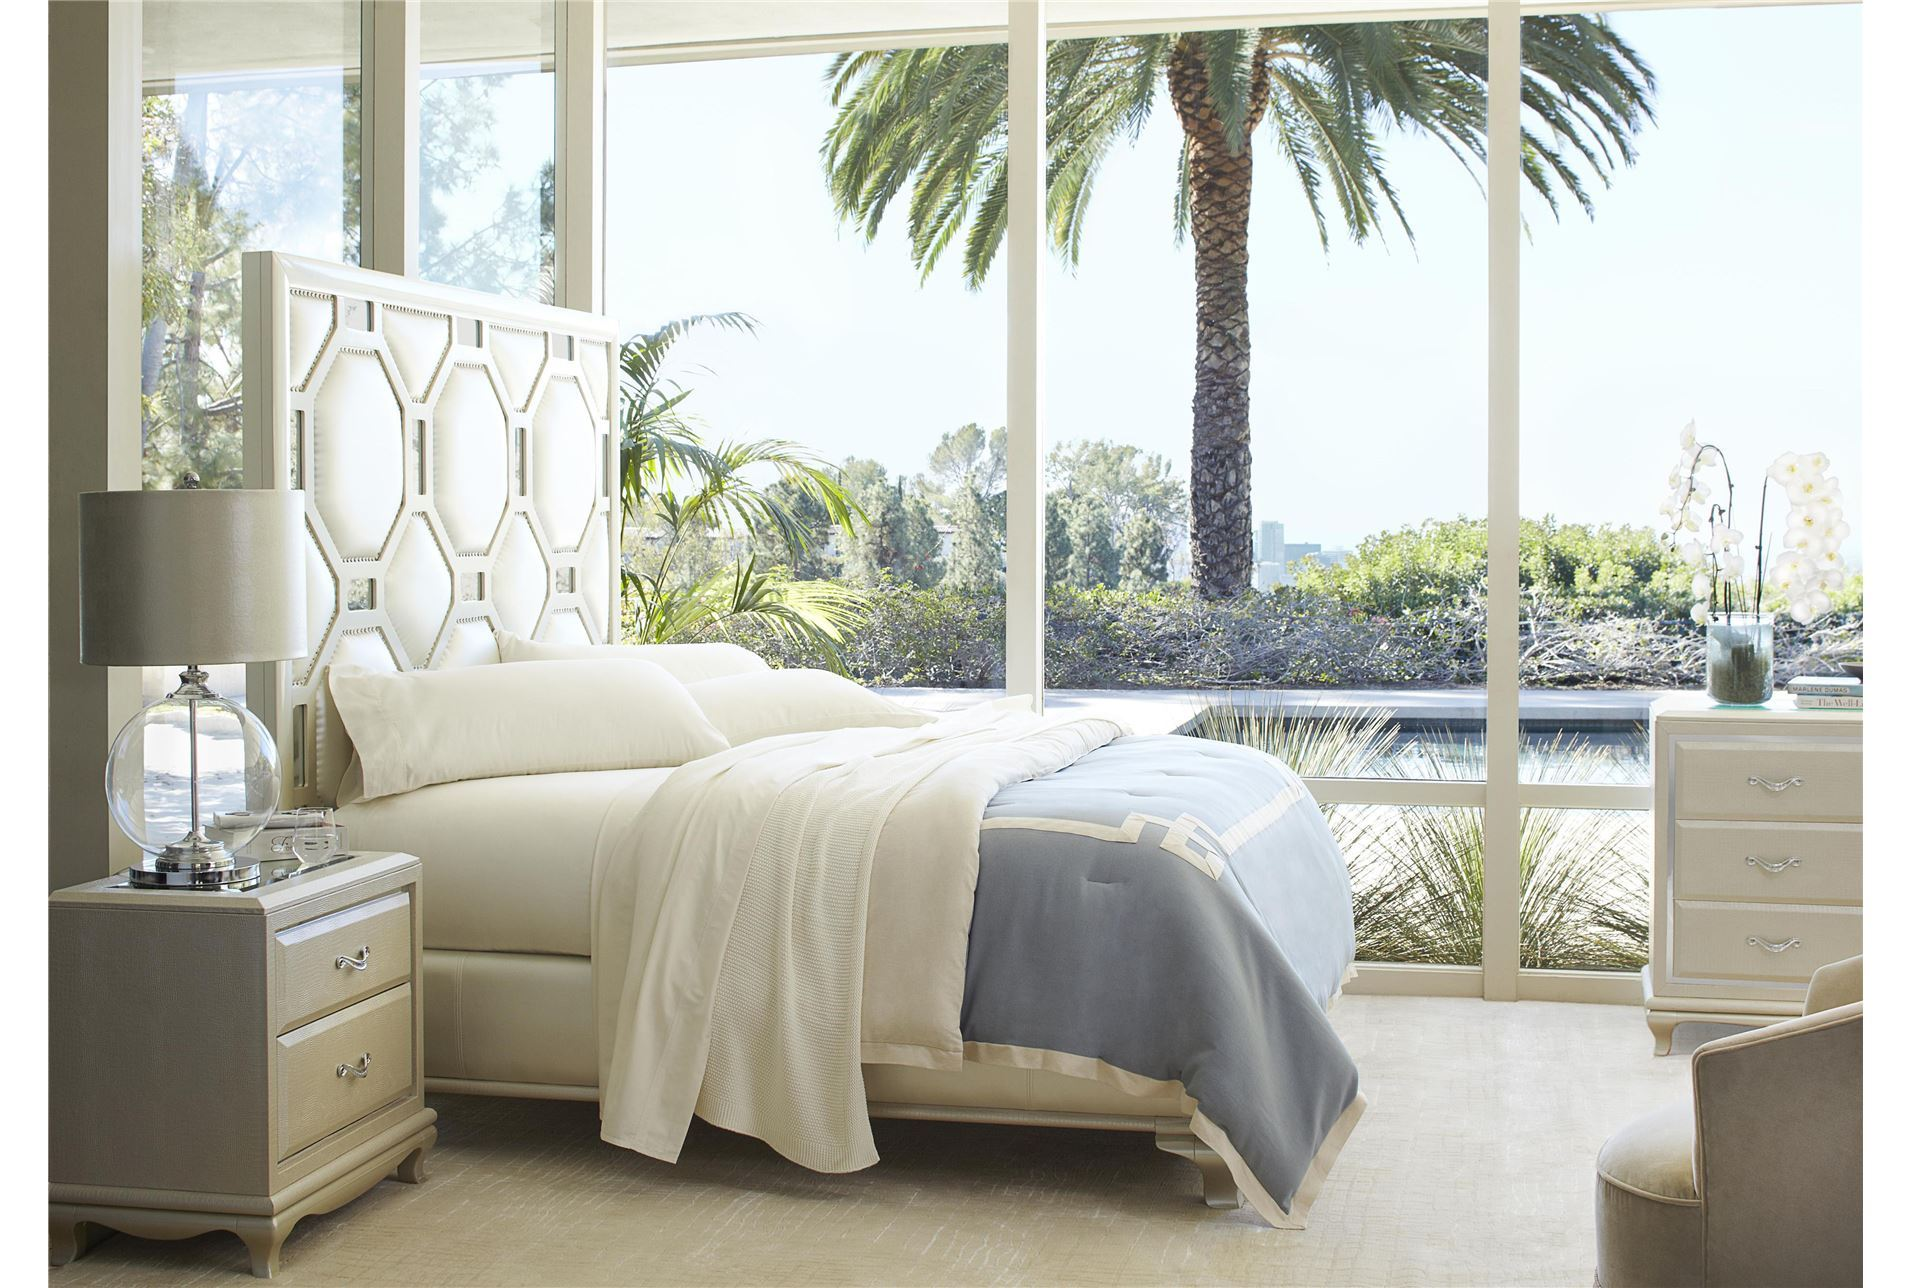 7 Beautiful White Queen Size Beds From US Stores Cute Furniture